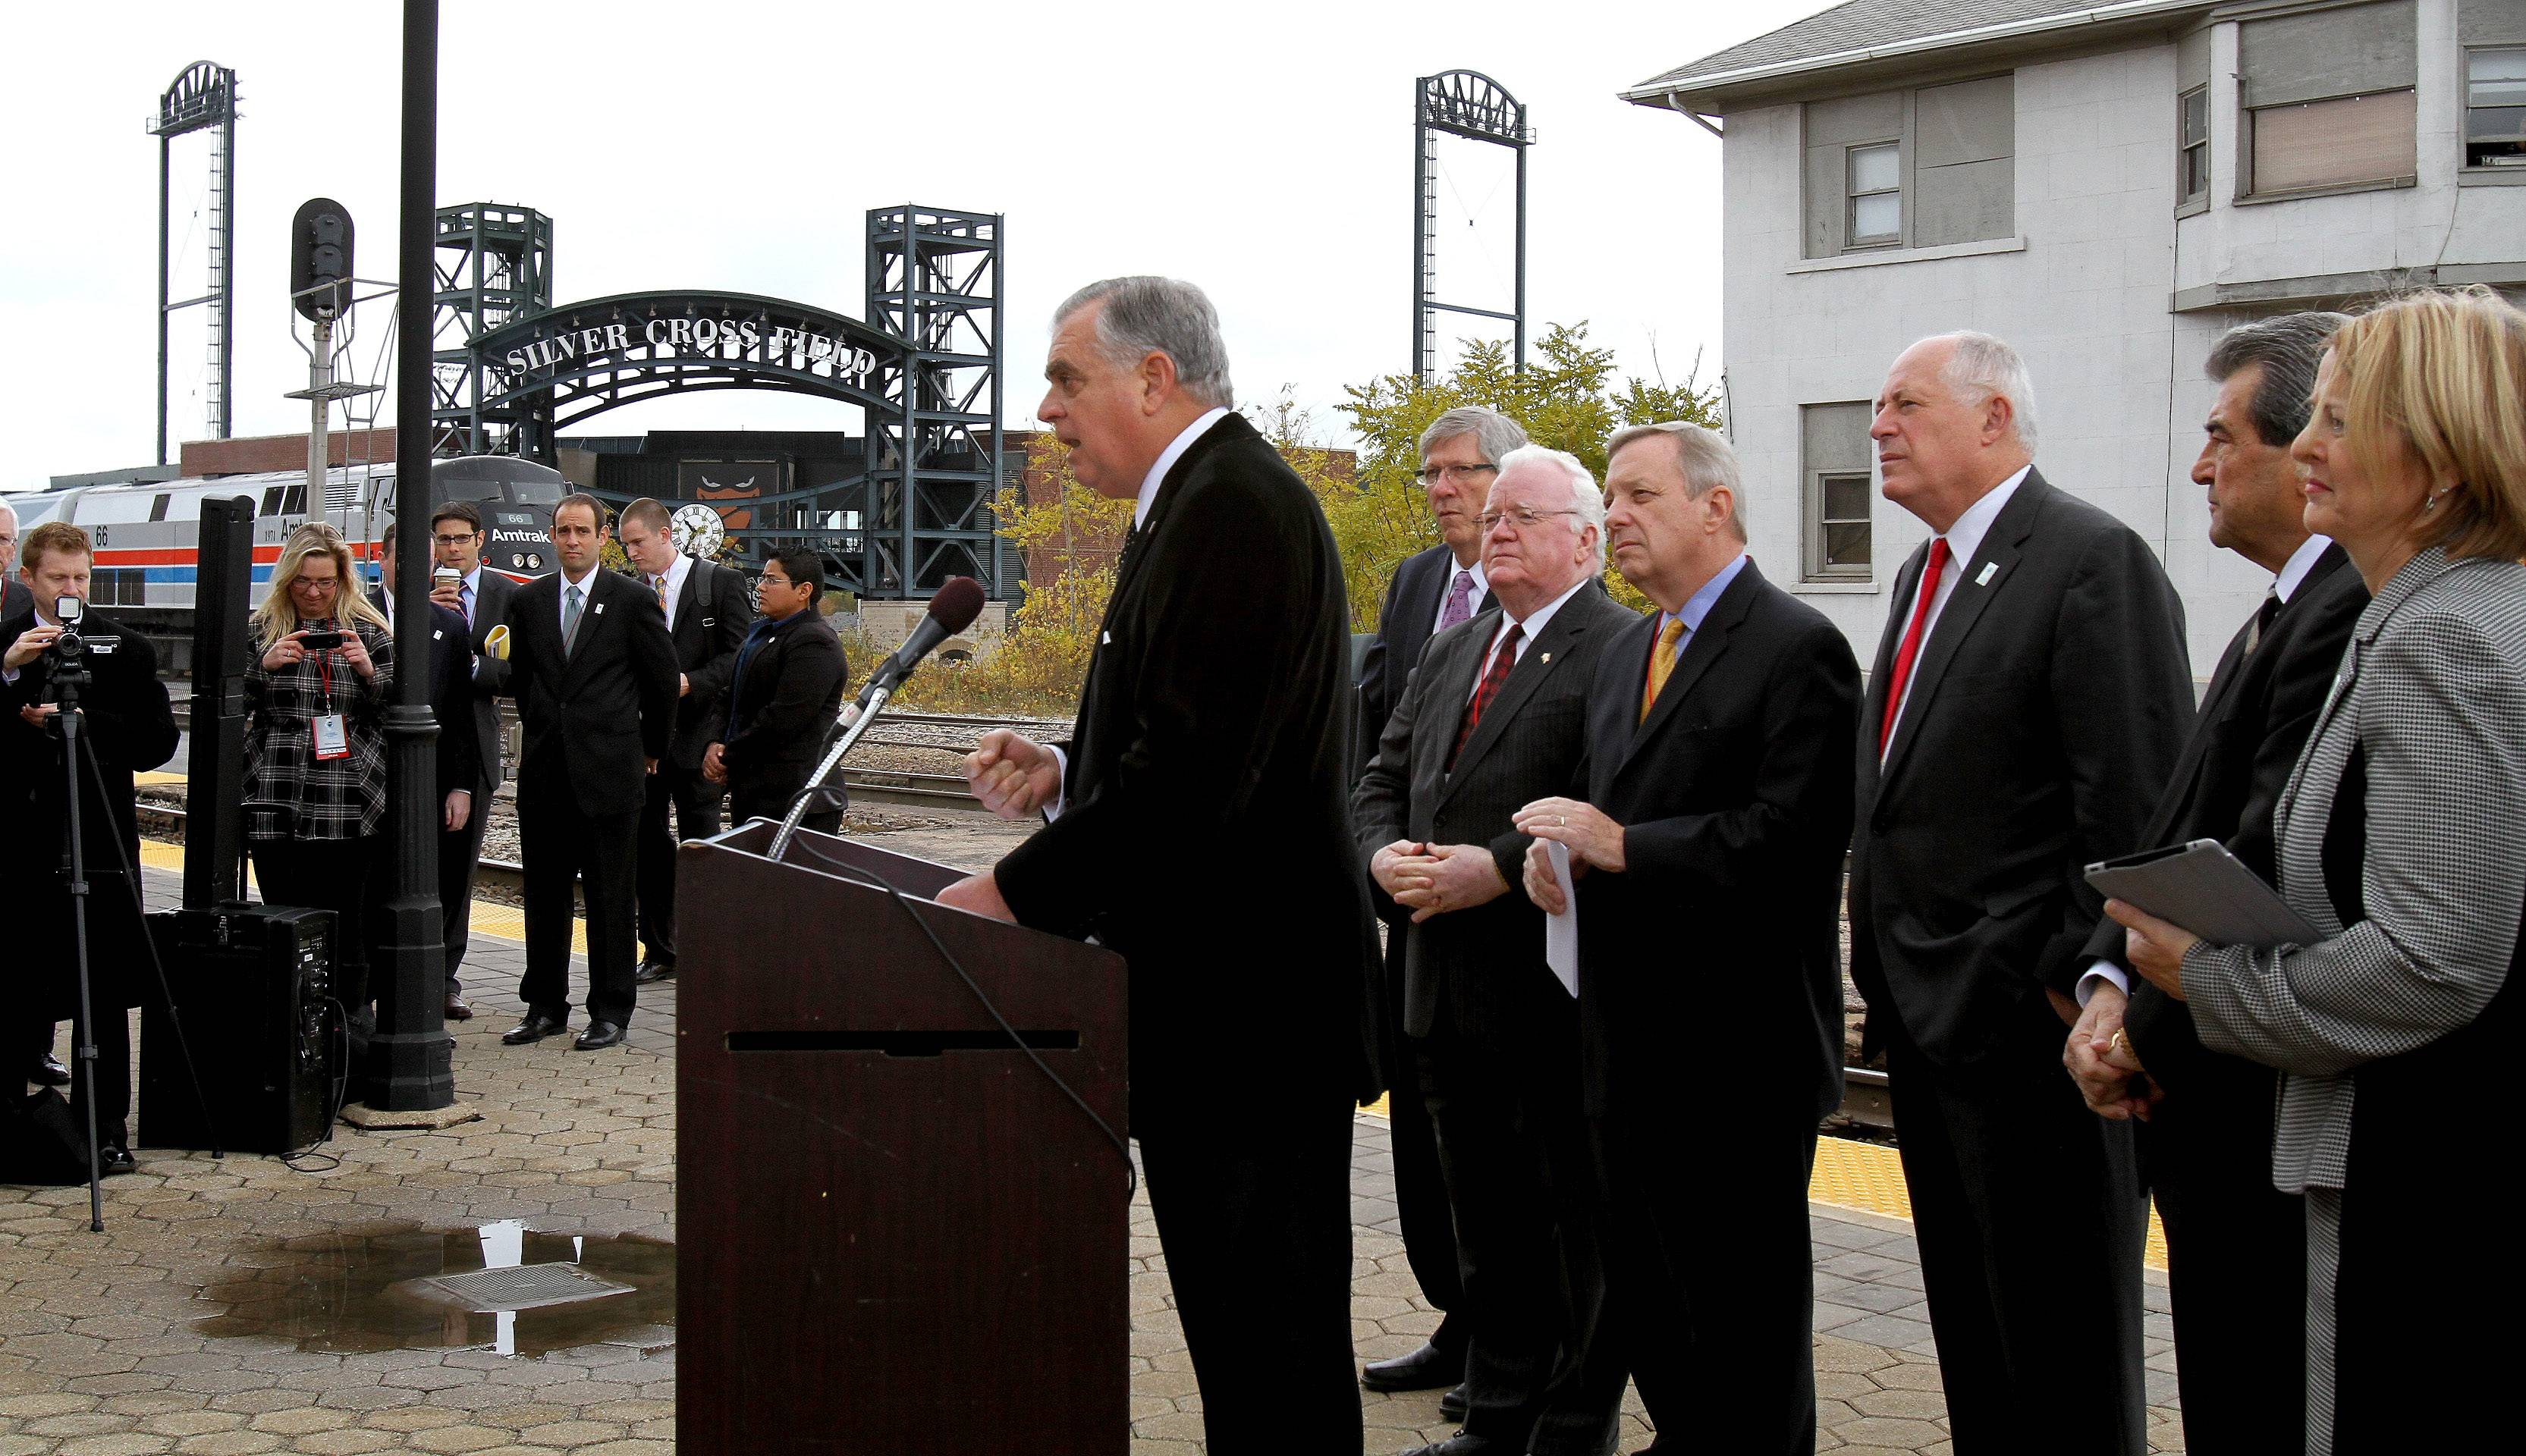 Secretary of Transportation Ray LaHood speaks at a press conference before officials take a high-speed train ride from Joliet to Normal on Friday. A planned high-speed rail route between Chicago and St. Louis will be the first in the midwest.